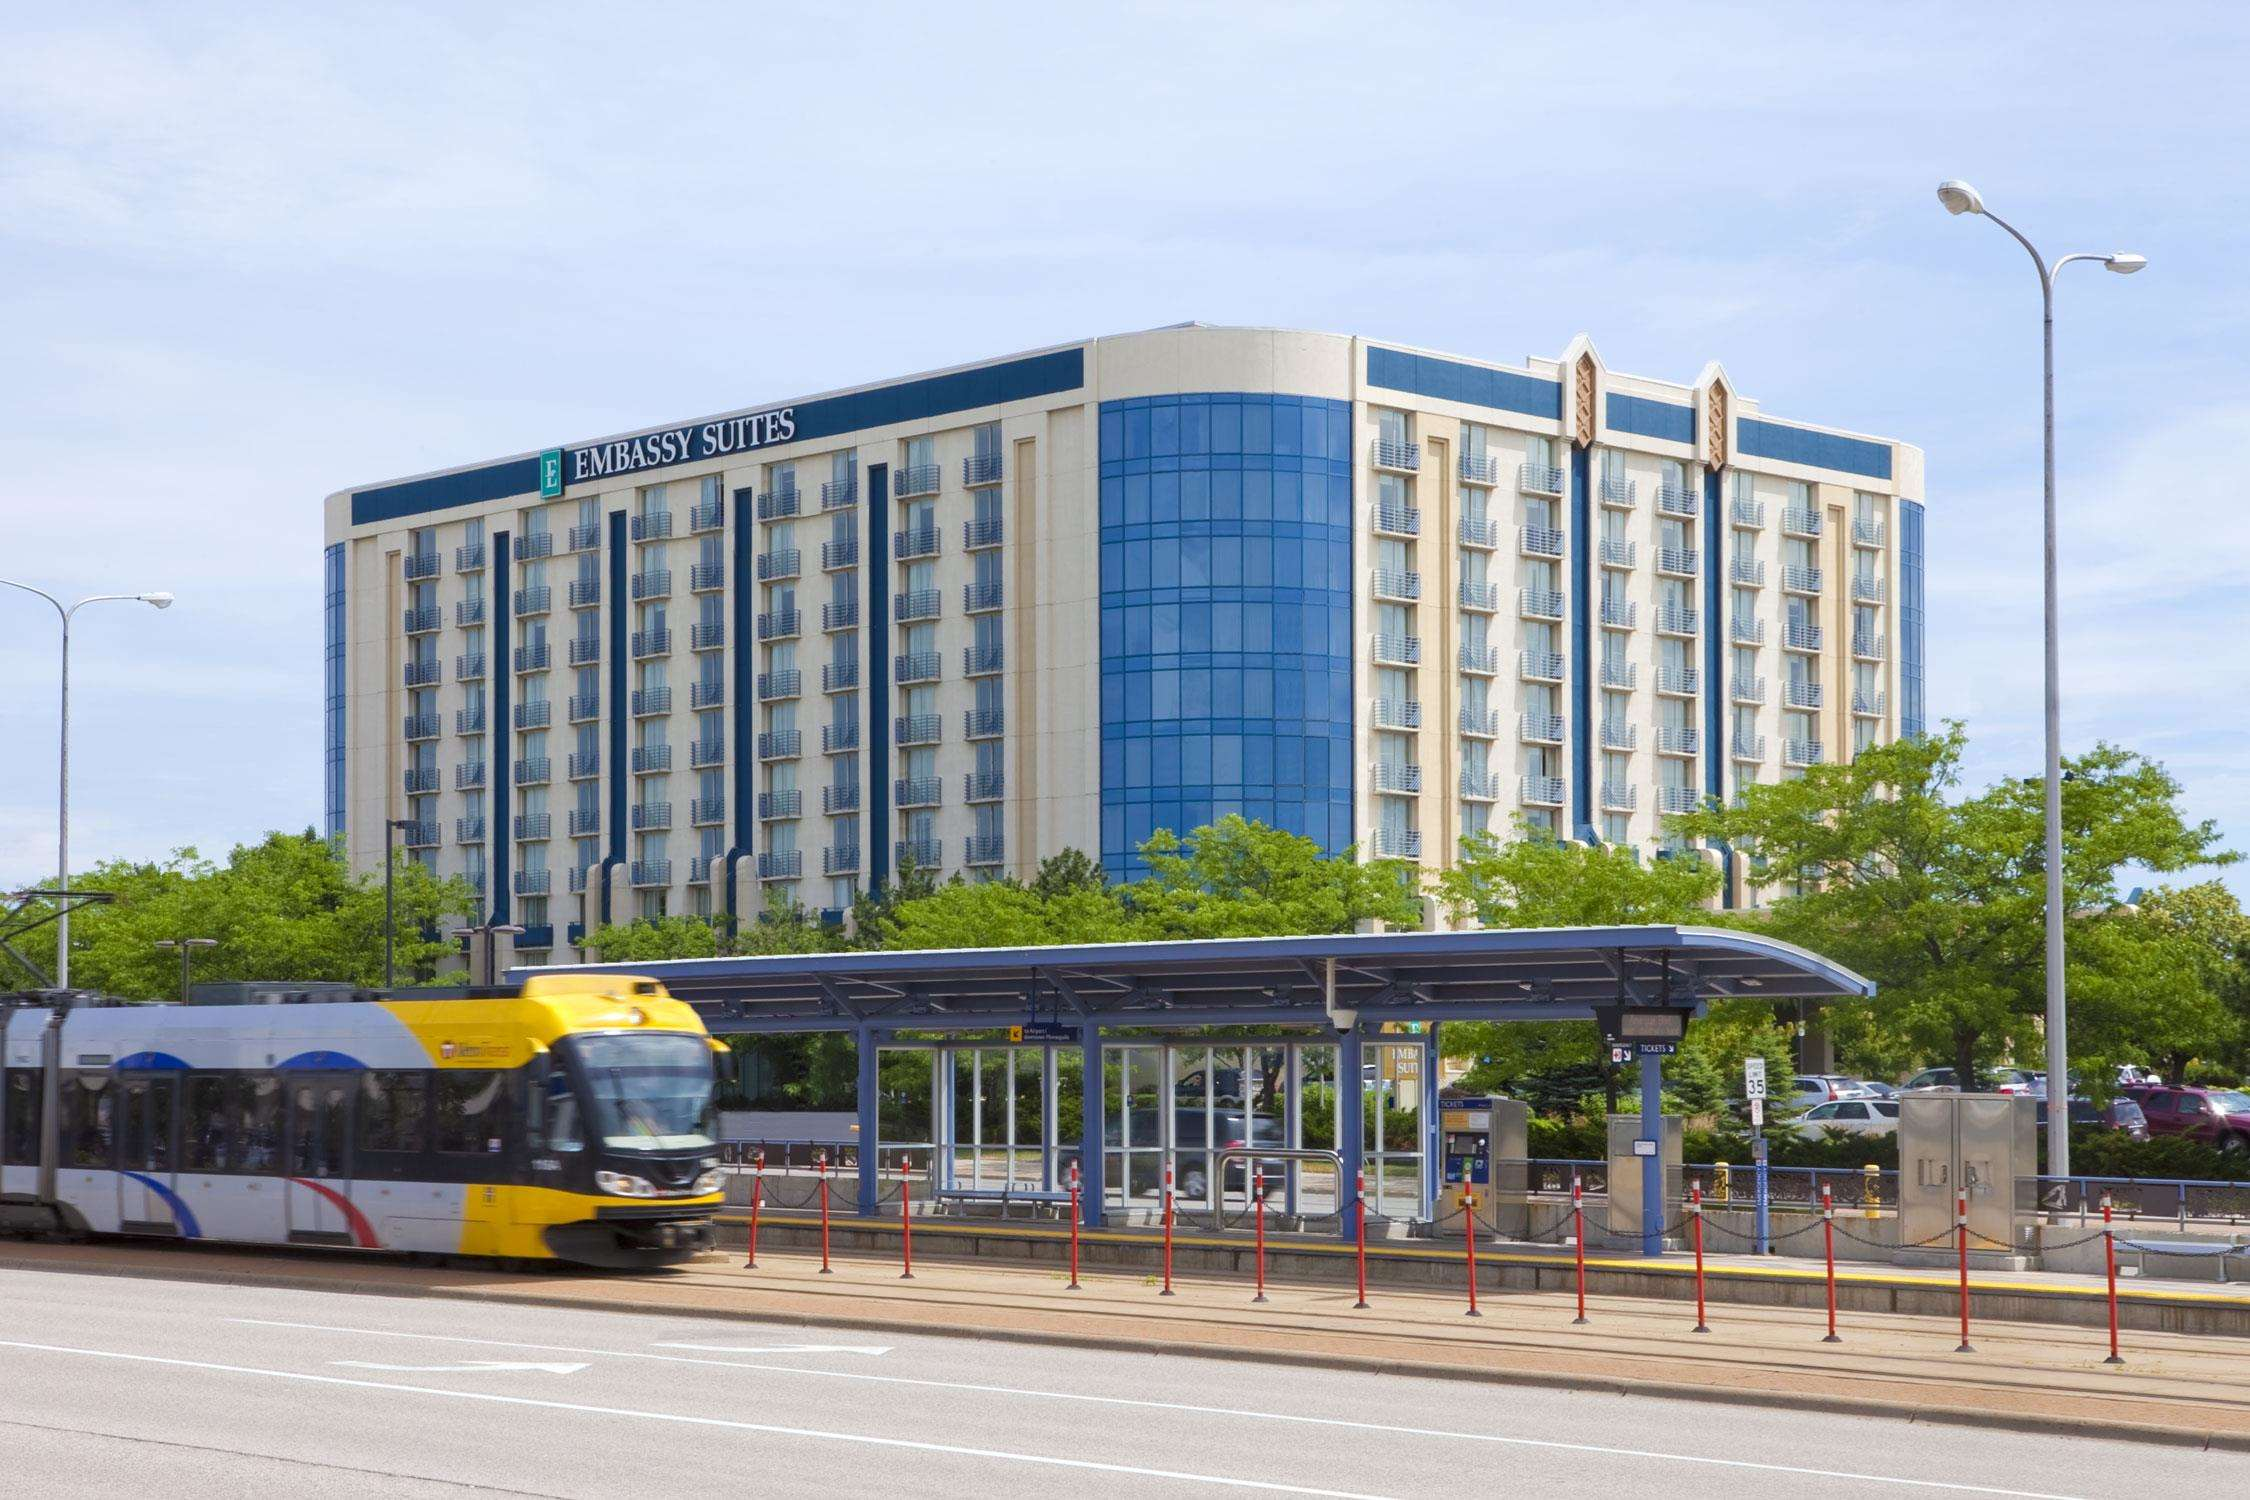 Embassy Suites by Hilton Minneapolis Airport image 0